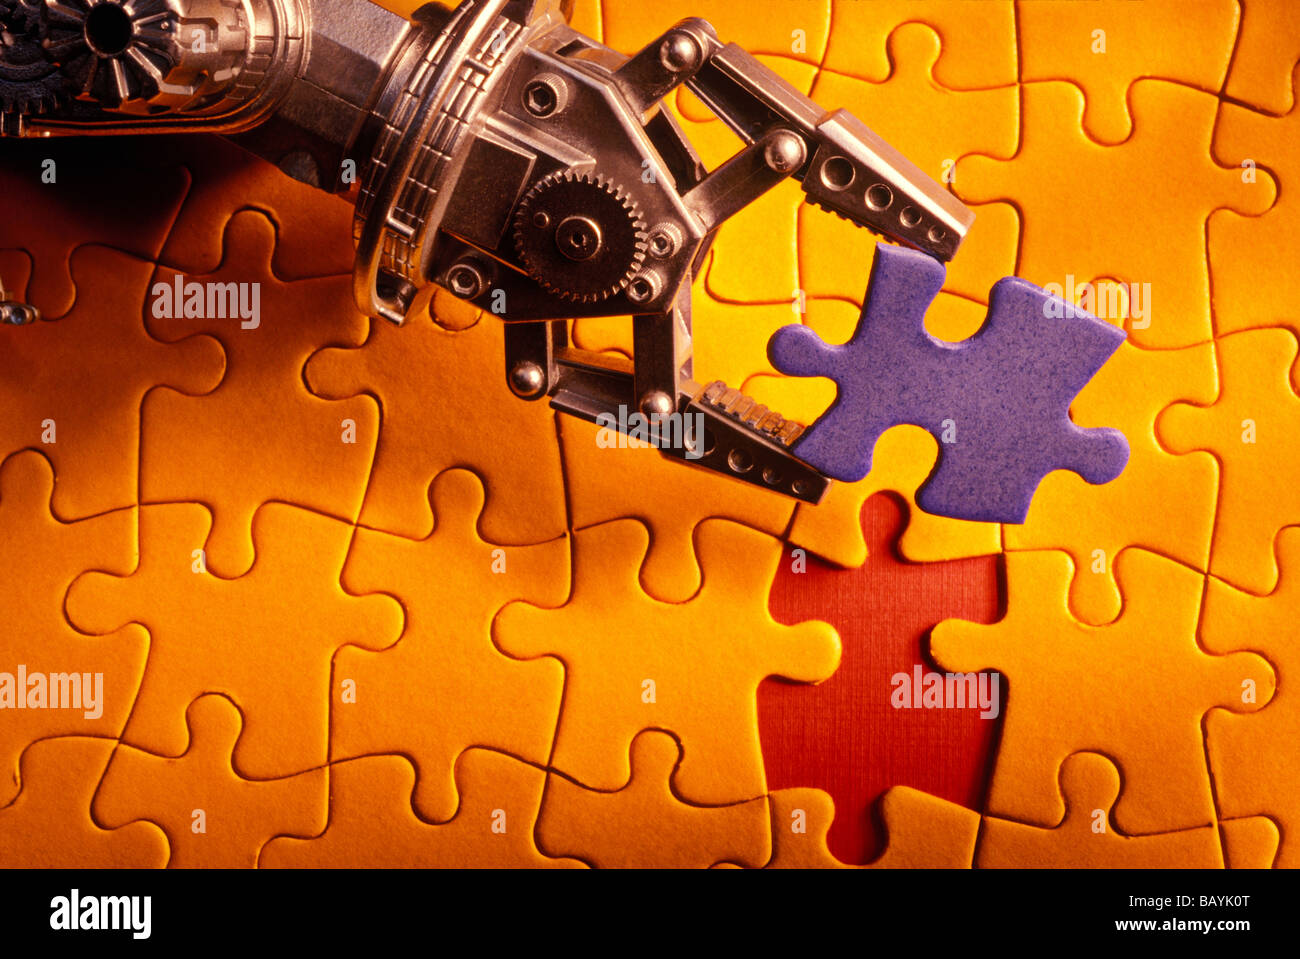 Robot arm holding jigsaw puzzle piece - Stock Image